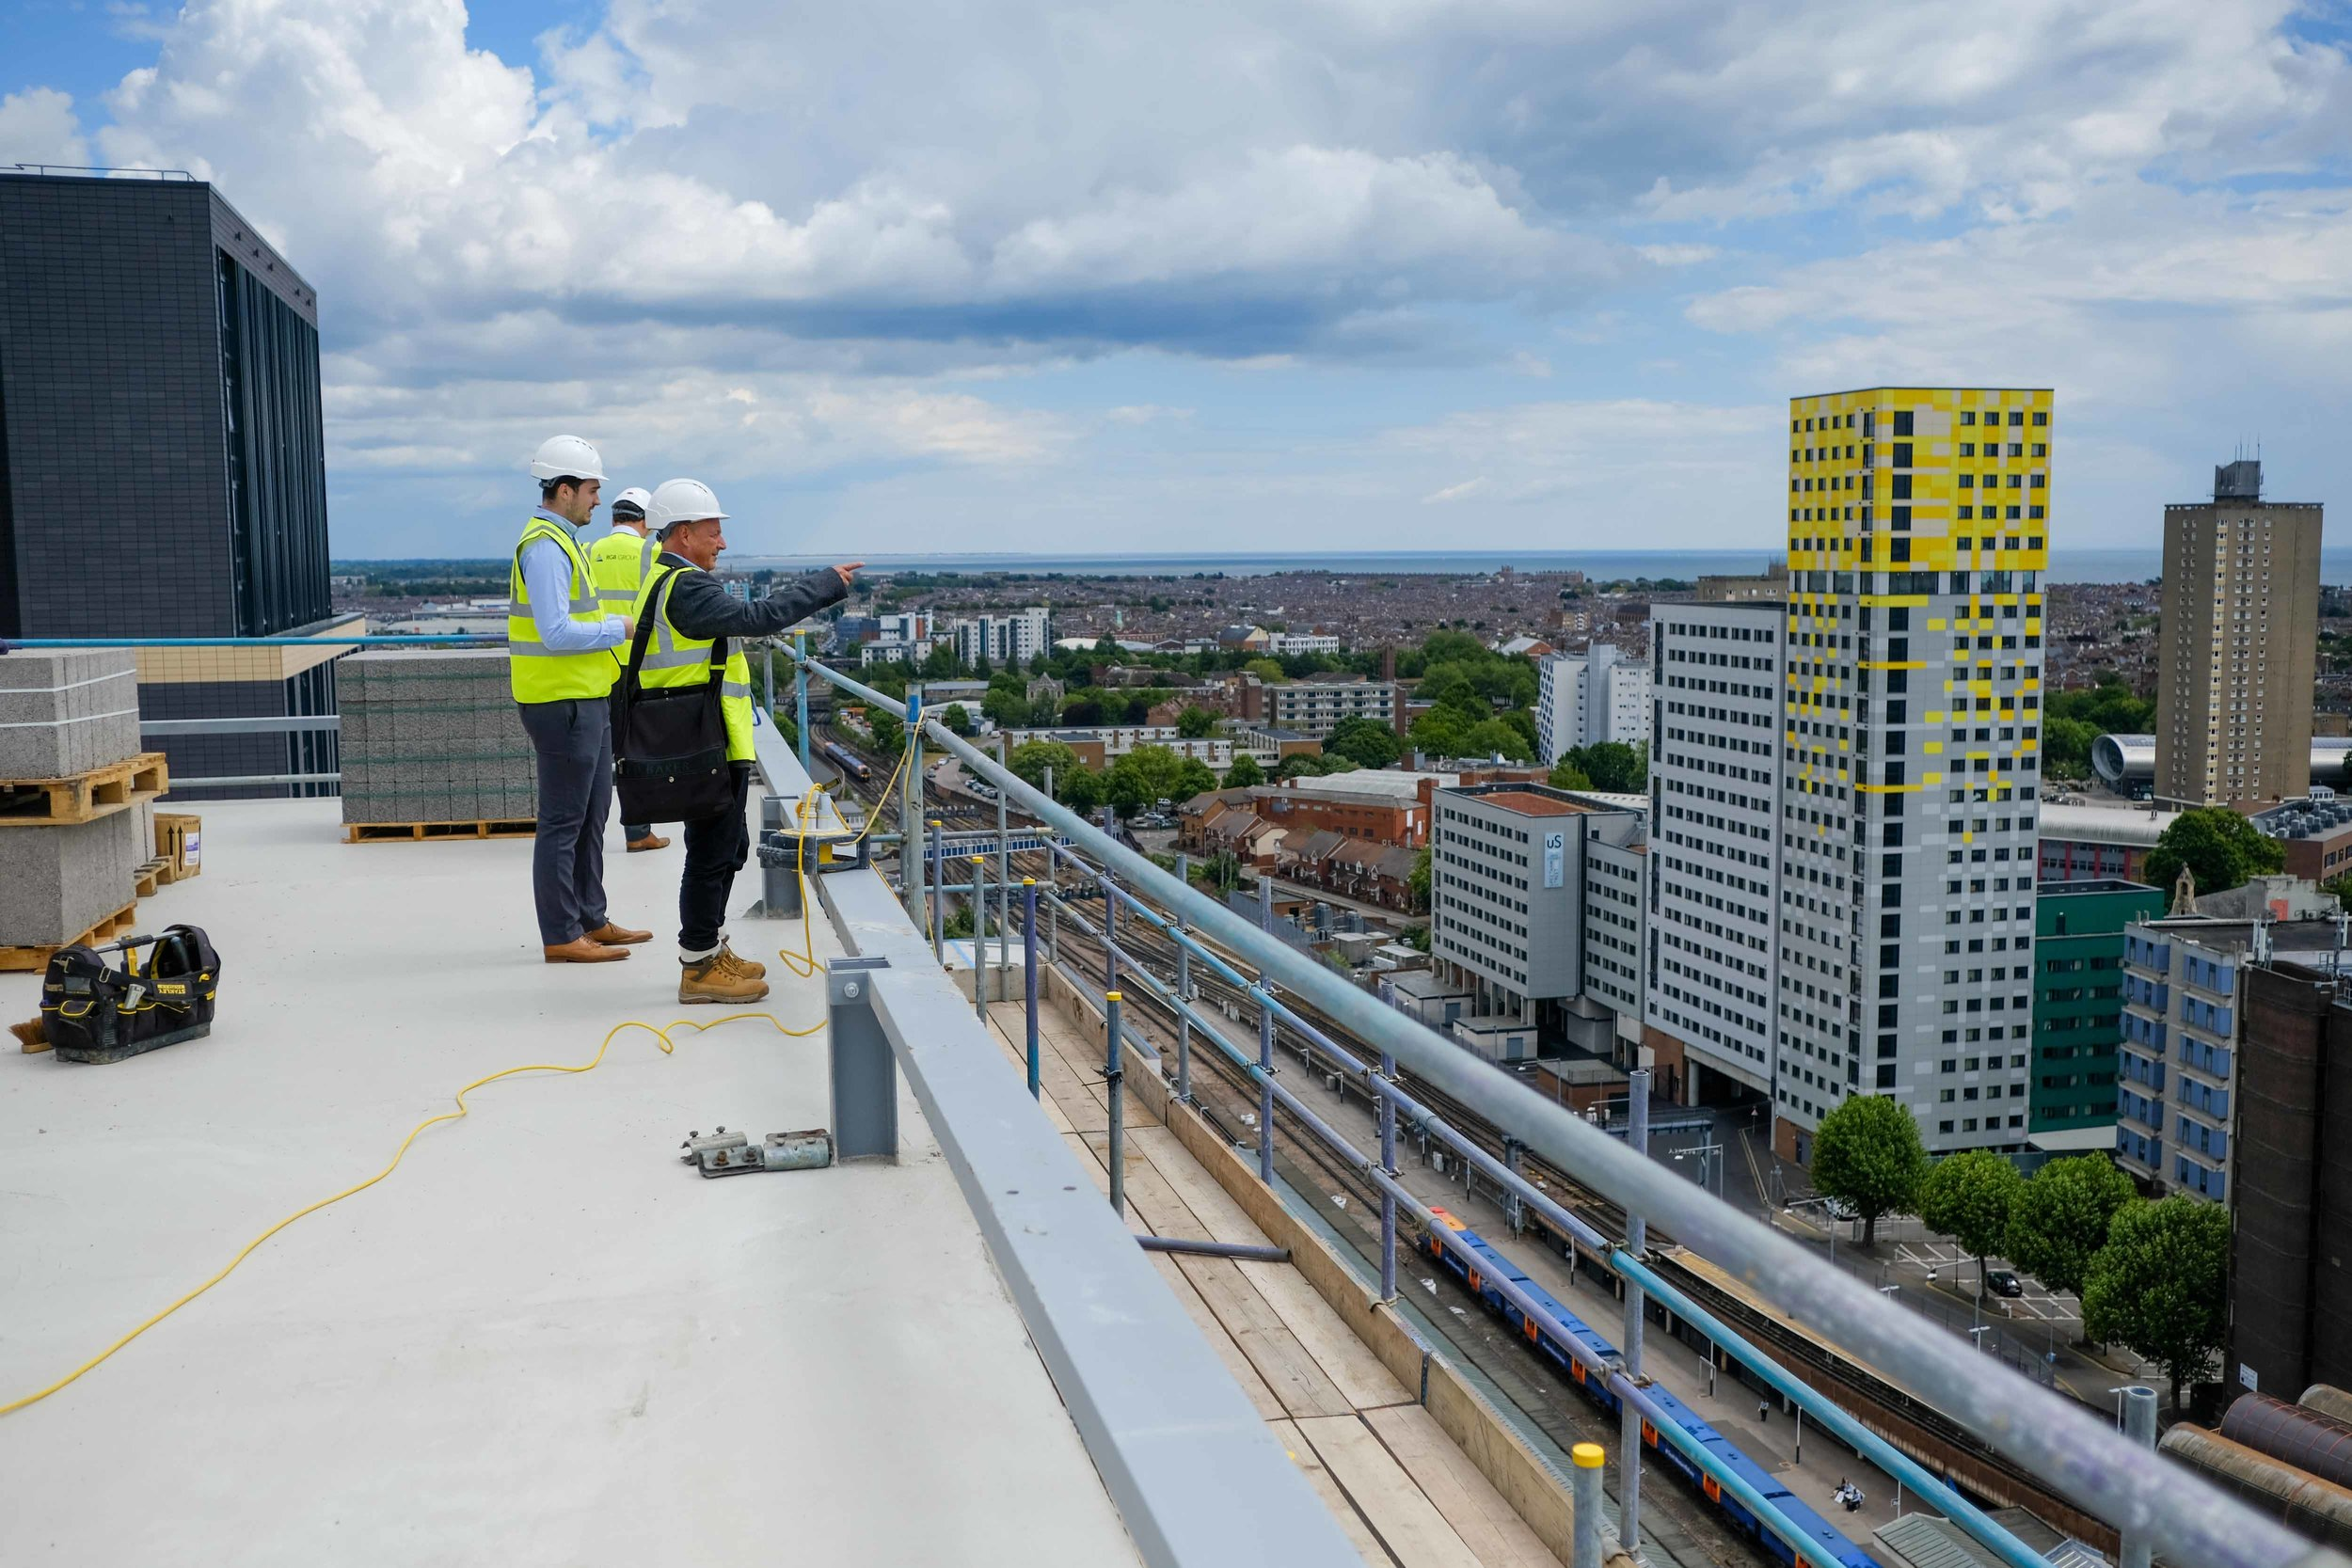 Stanhope House Topping Out 28.05.19 - Solent Sky Services--27.JPG